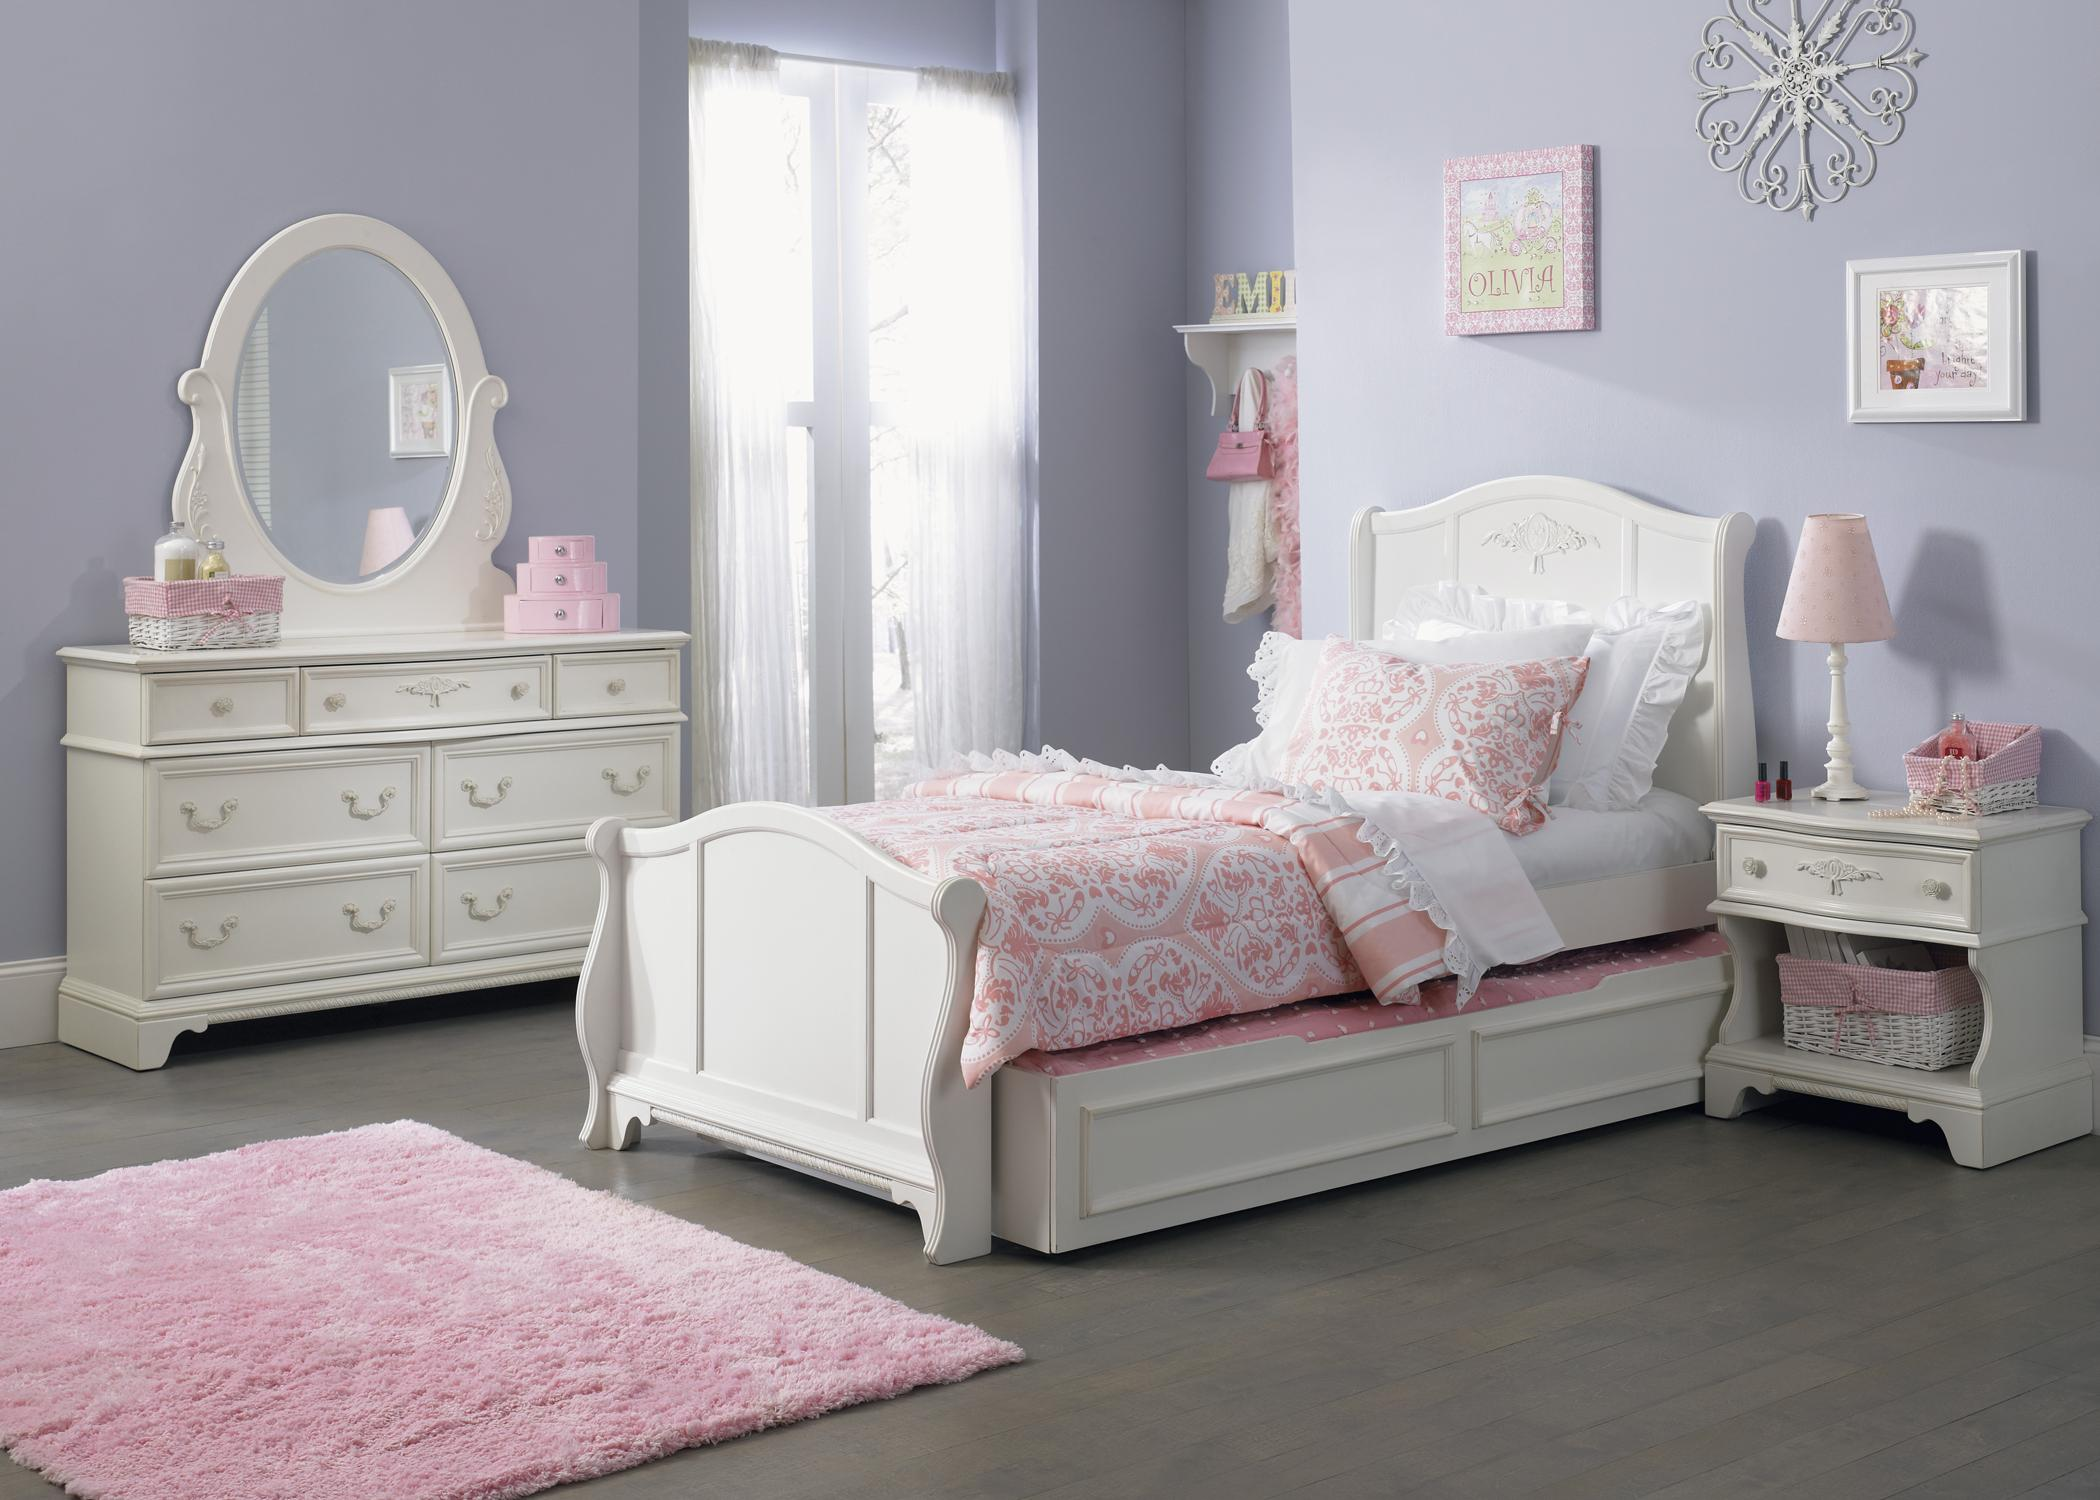 Bedroom Furniture Youth liberty furniture arielle youth bedroom 7 drawer dresser with felt